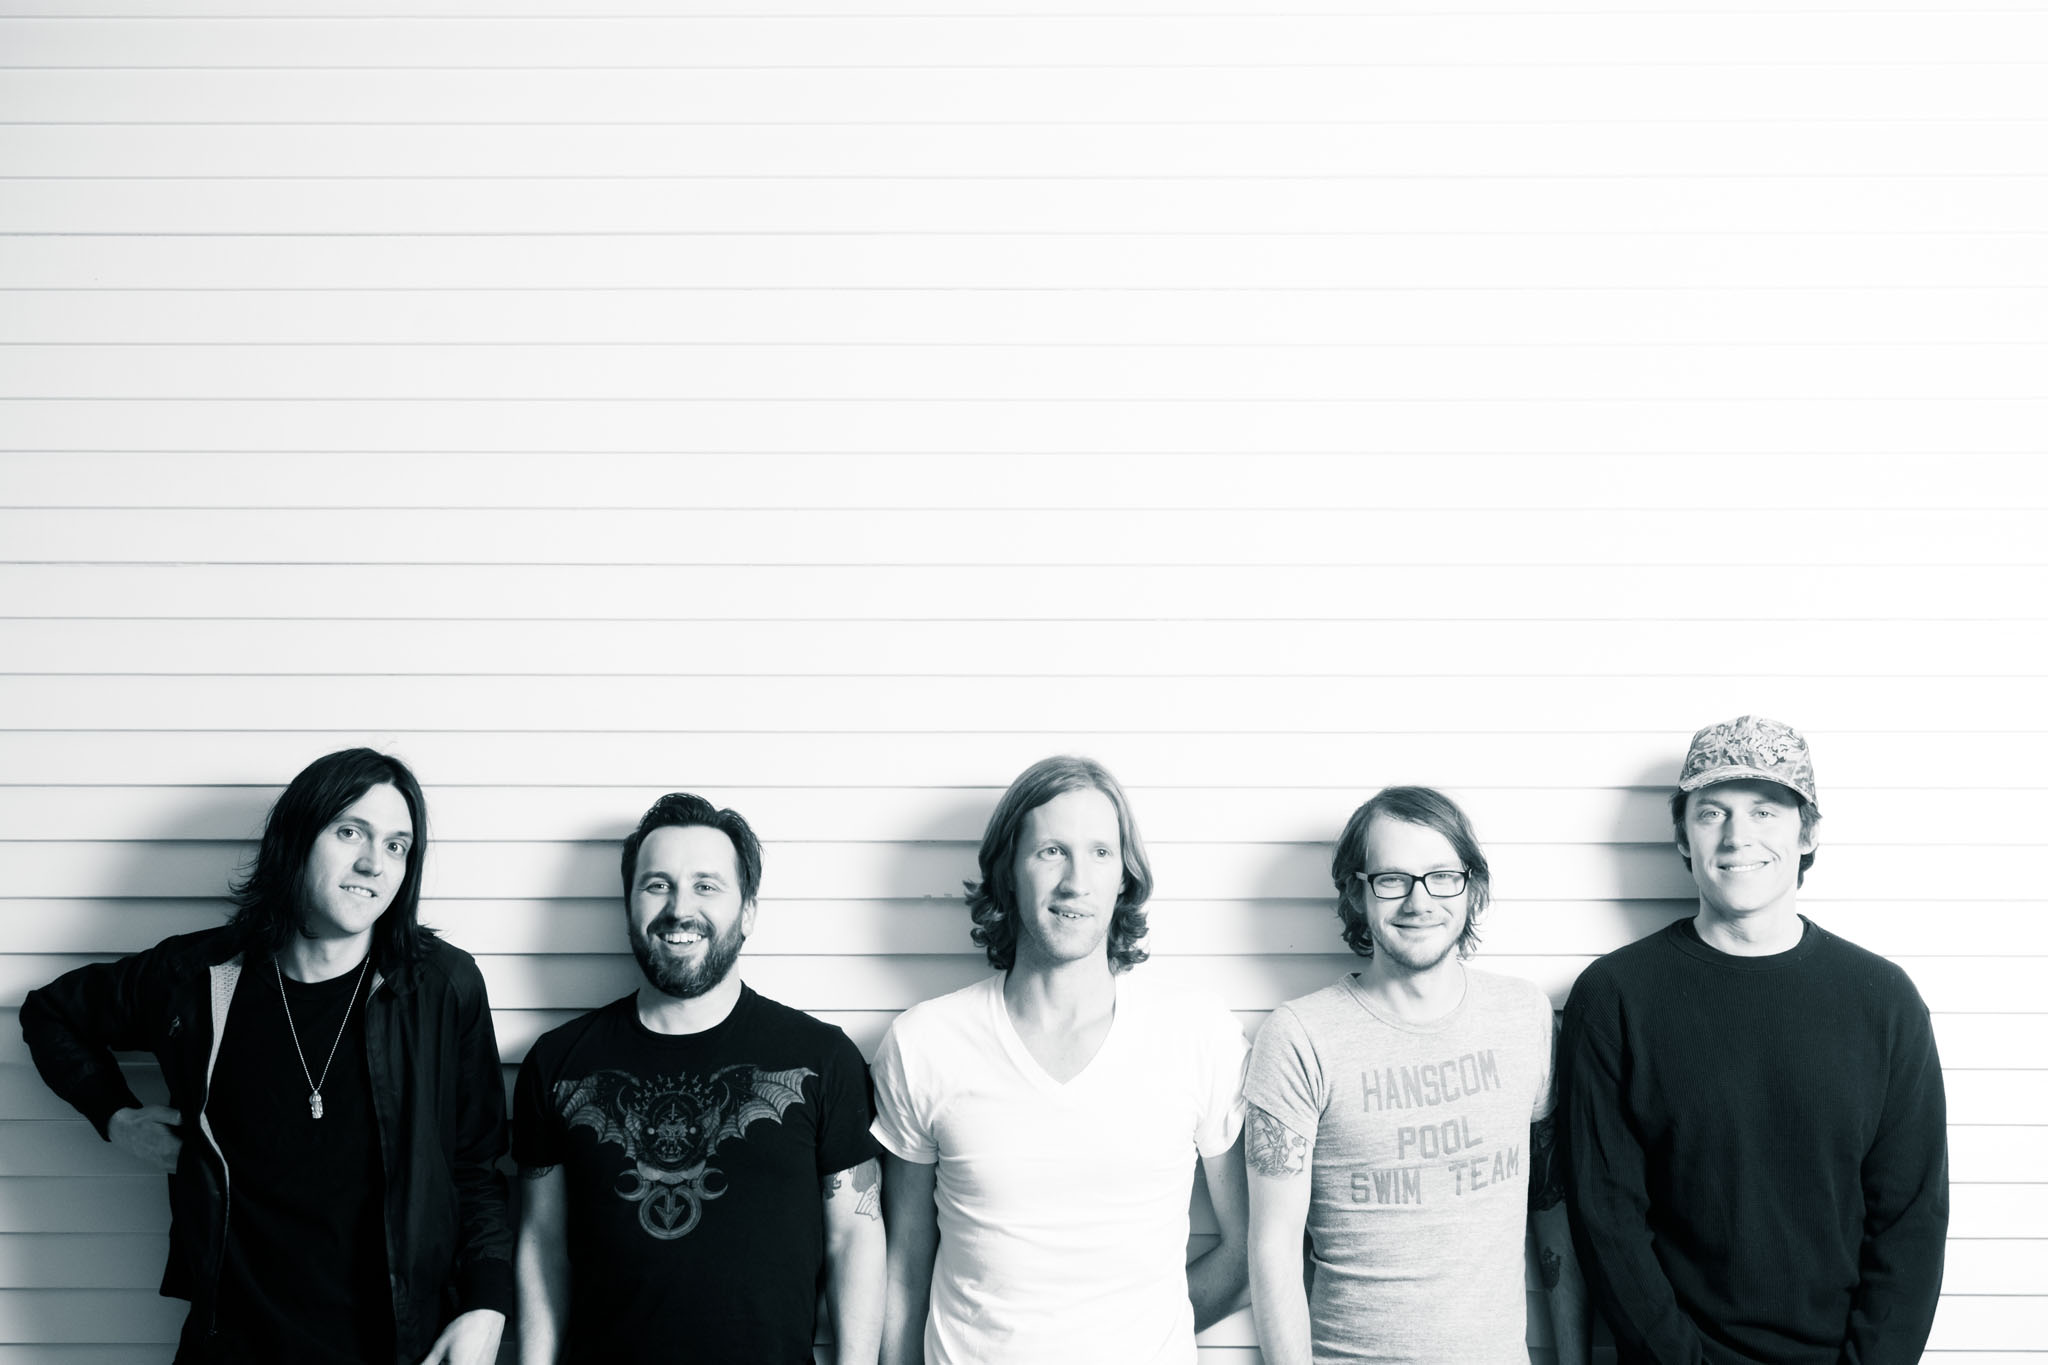 Desaparecidos forced to cancel remaining U.S. tour dates